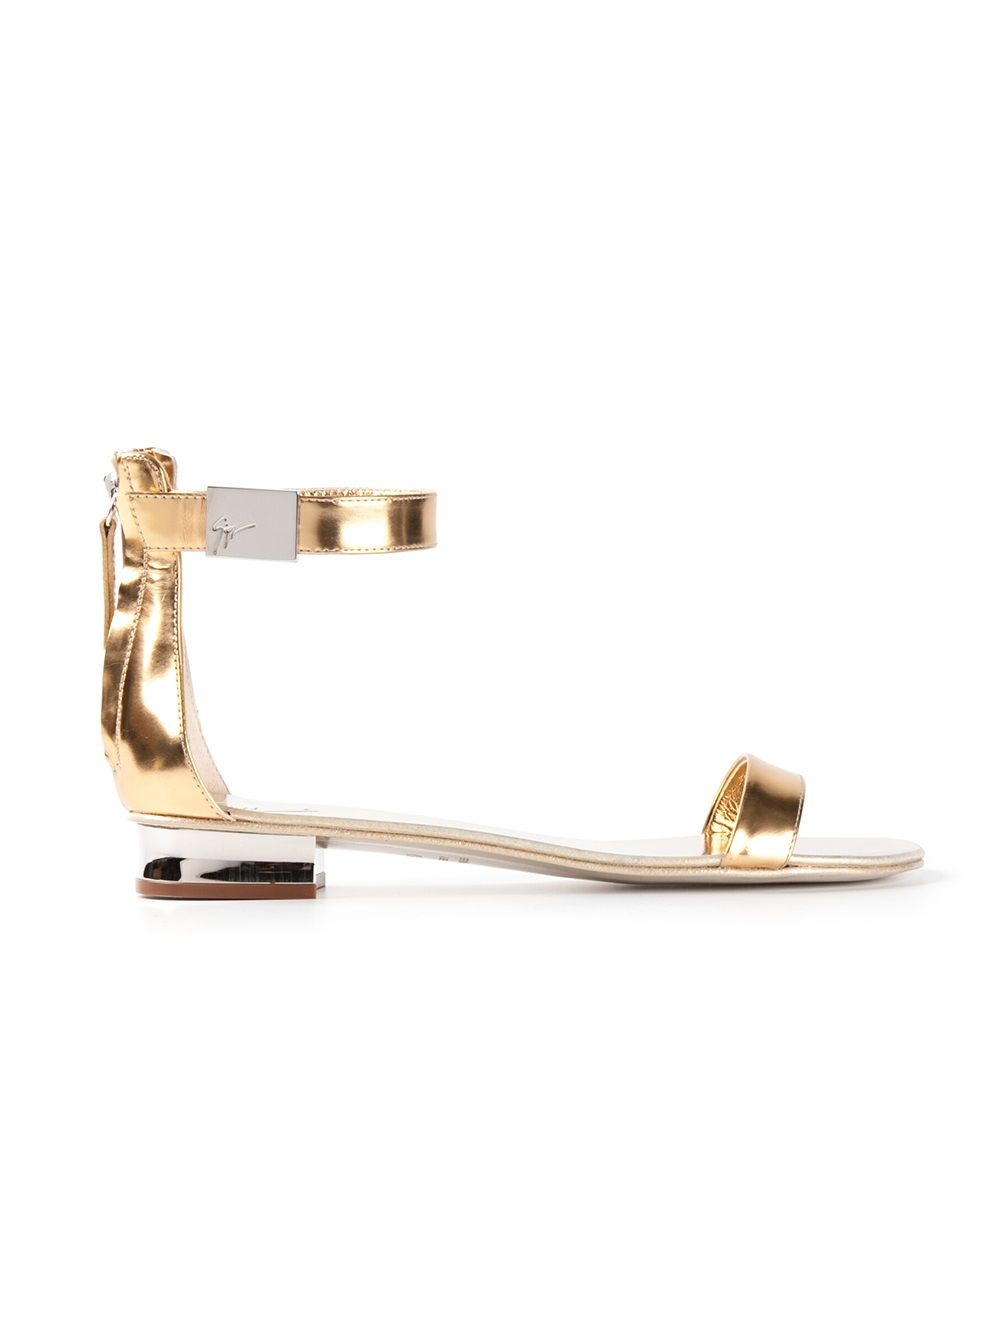 78ead0c97 Women's Metallic Sandal | Shoes | Metallic sandals, Sandals ...